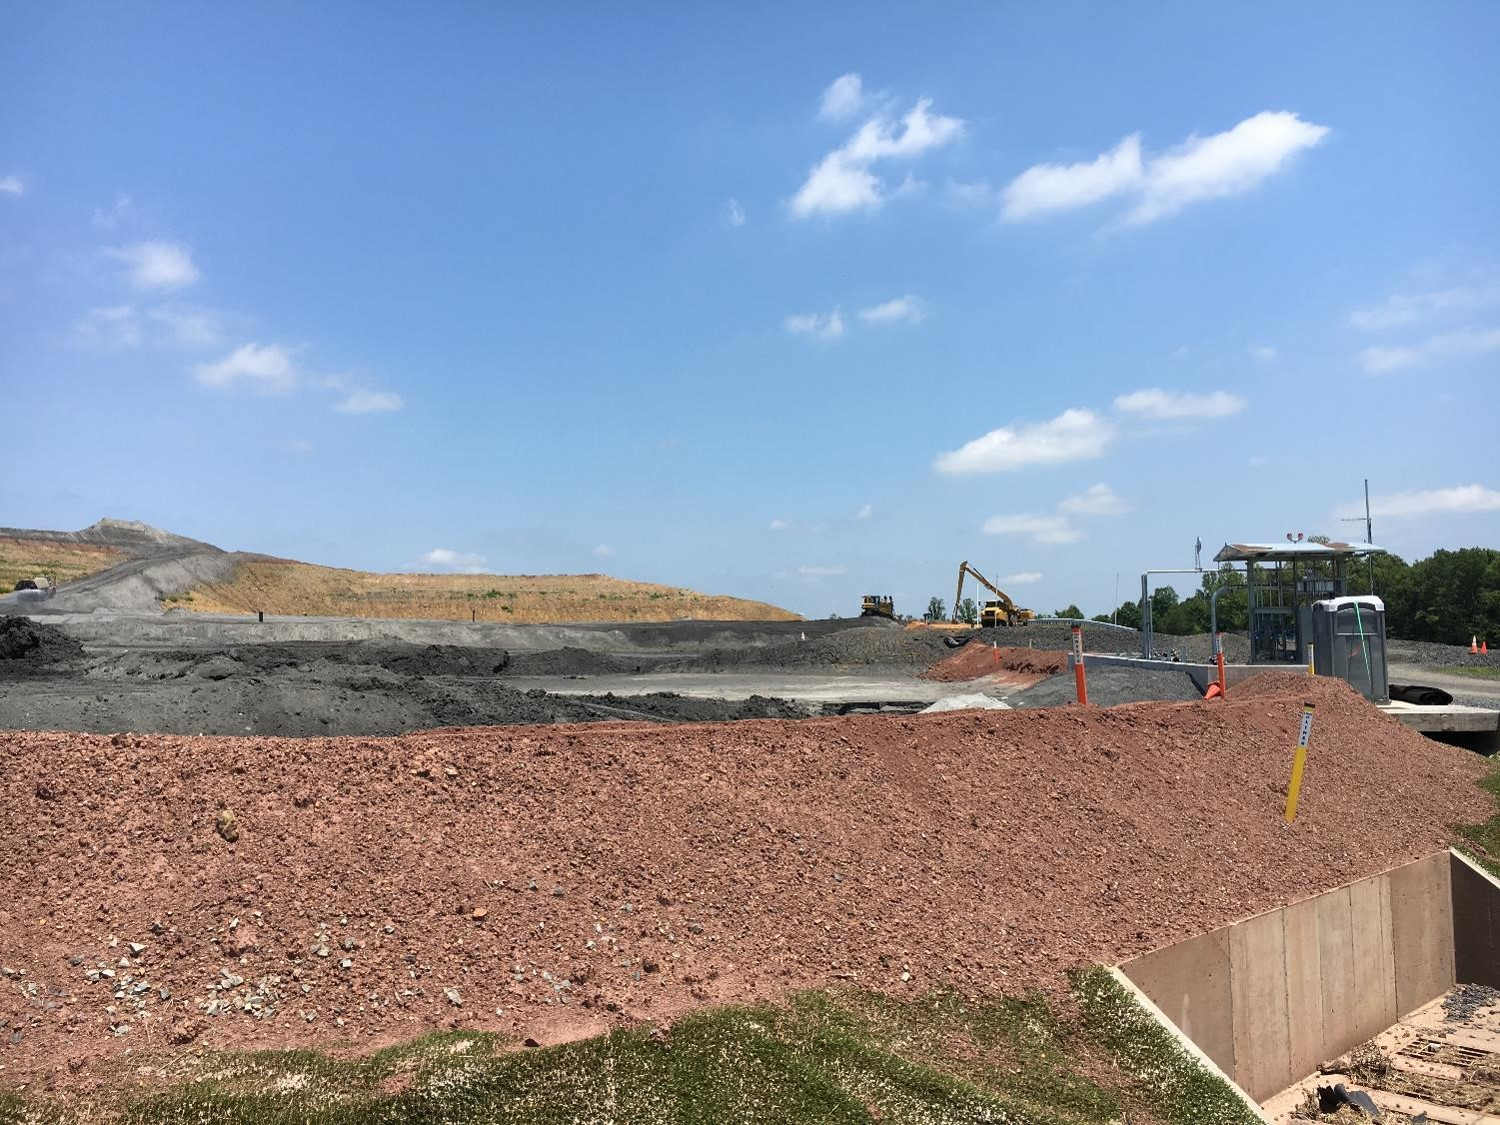 Photo of coal combustion residuals landfill at Dan River facility